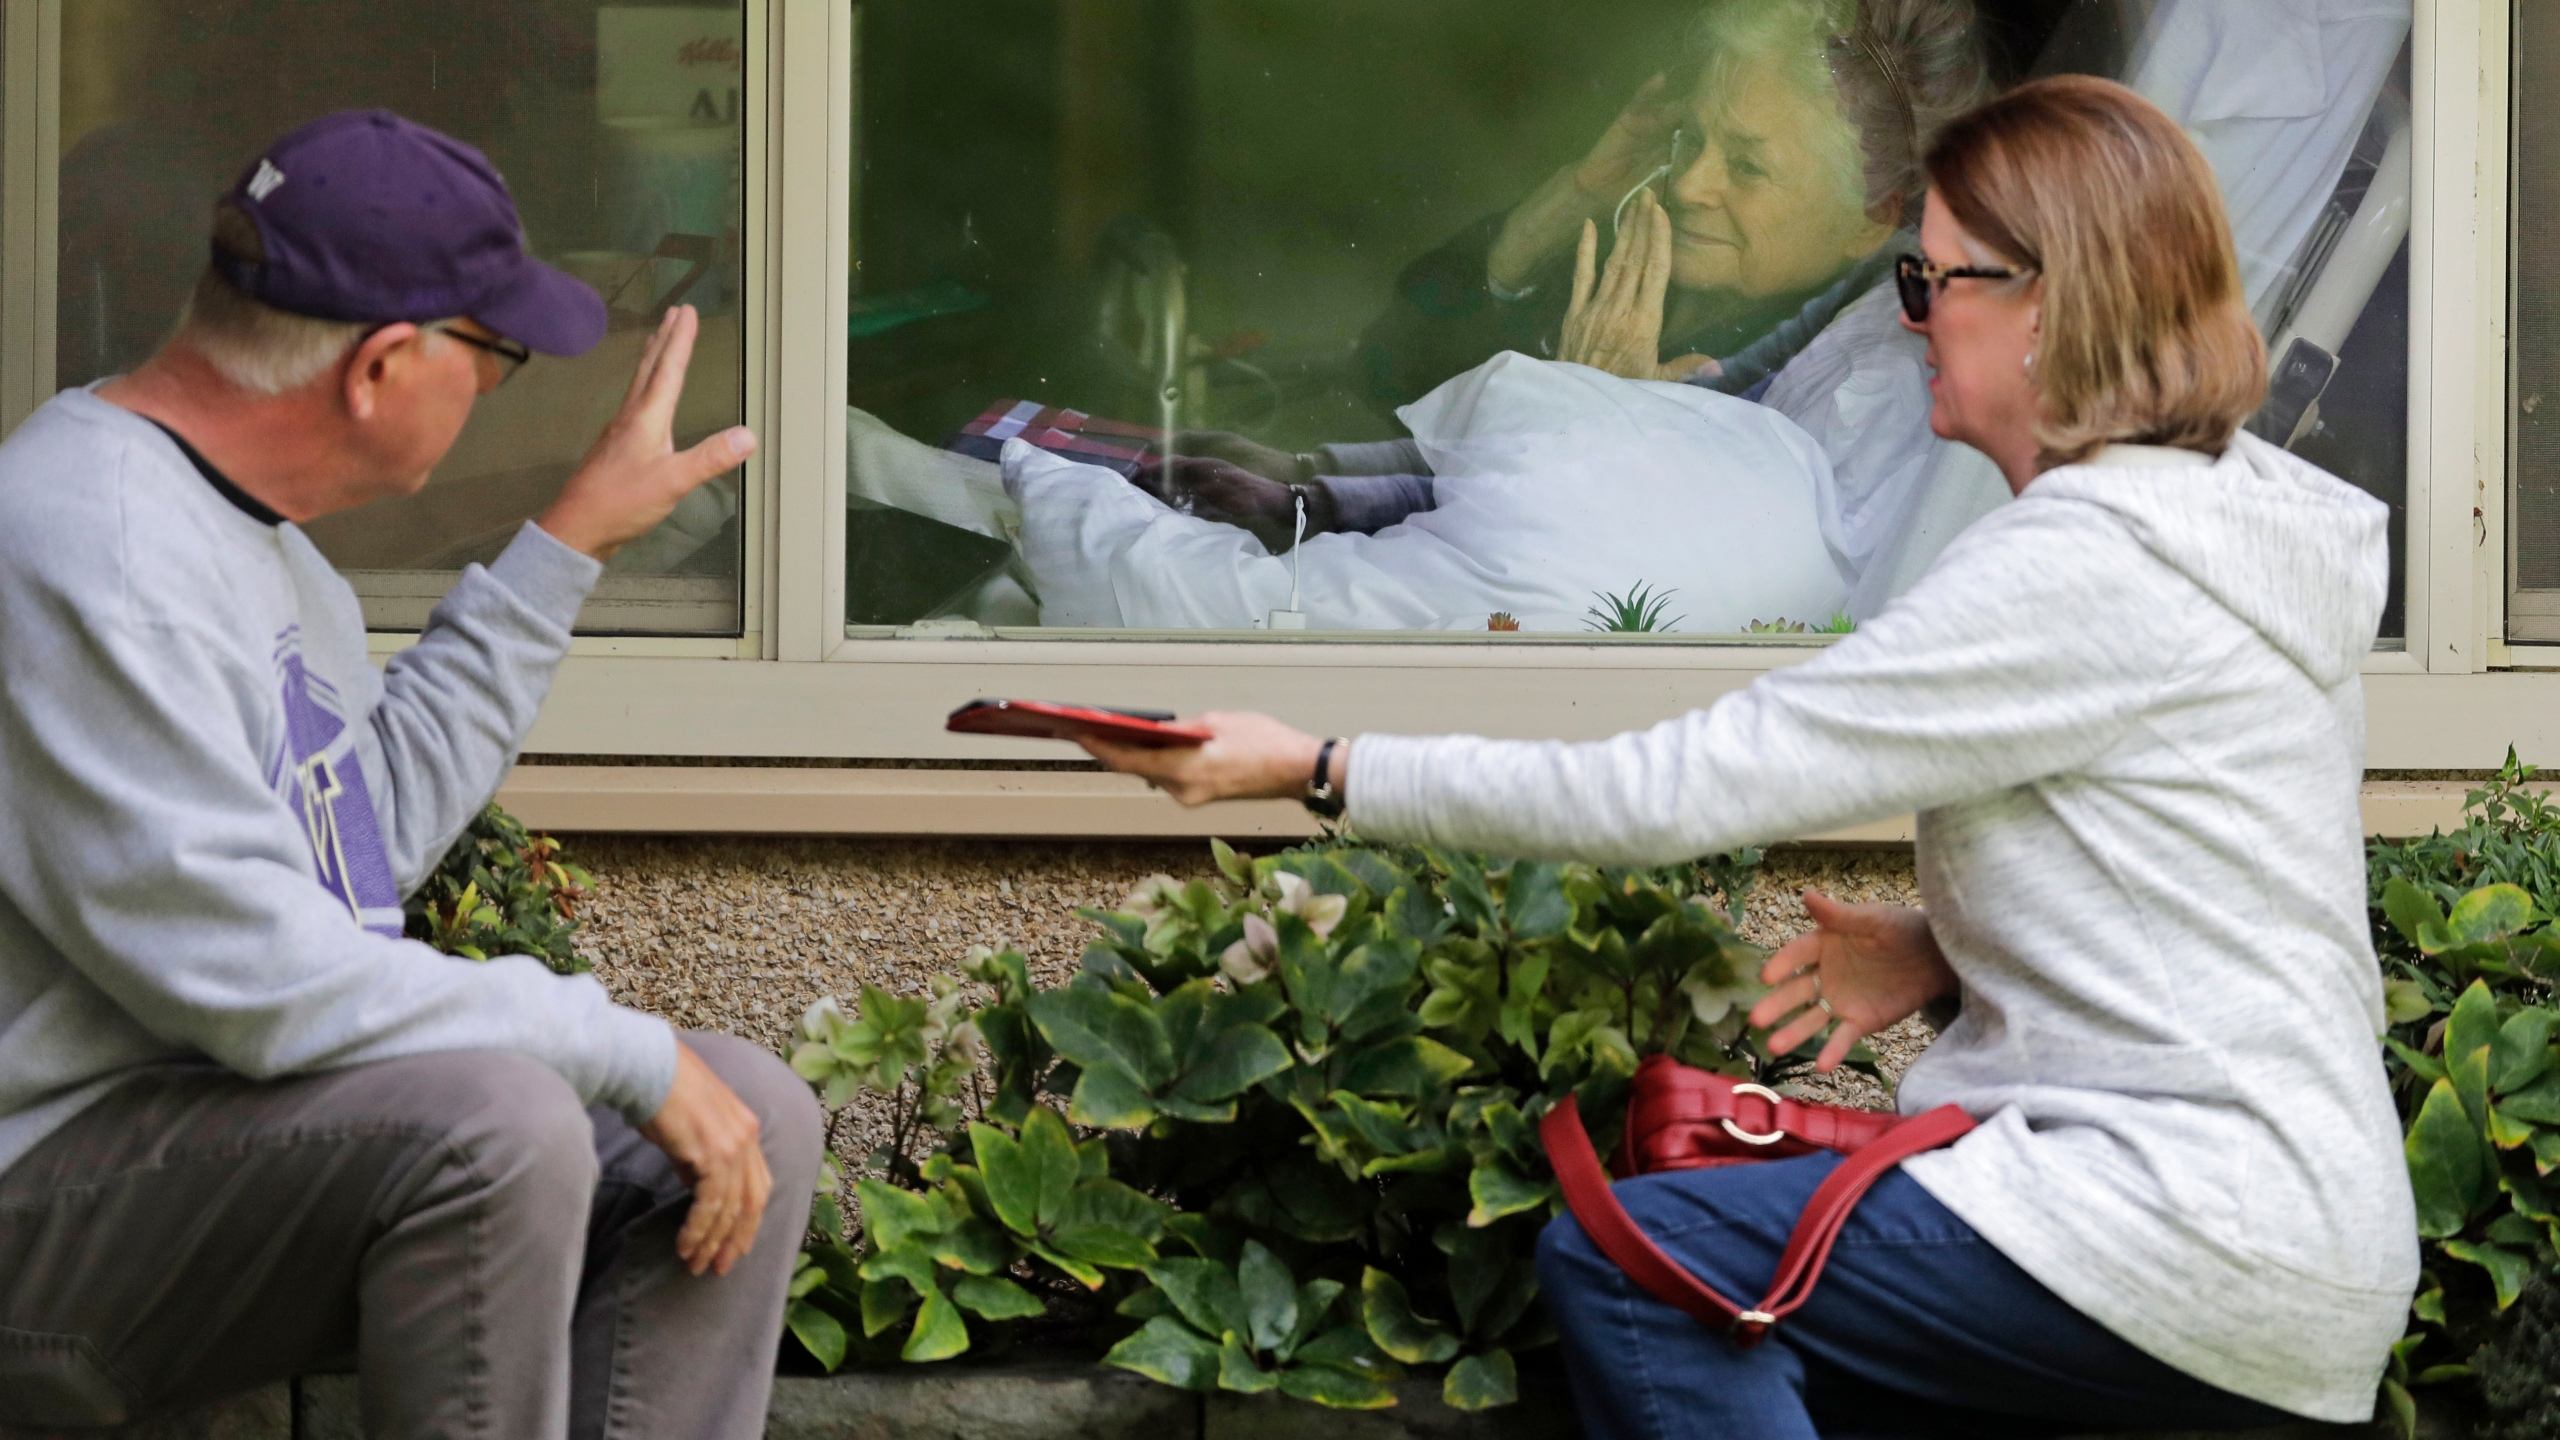 Judie Shape, center, who has tested positive for the coronavirus, blows a kiss to her son-in-law, Michael Spencer, left, as Shape's daughter, Lori Spencer, right, looks on, as they visit on the phone and look at each other through a window at the Life Care Center in Kirkland, Wash., on March 11, 2020. (Ted S. Warren / Associated Press)